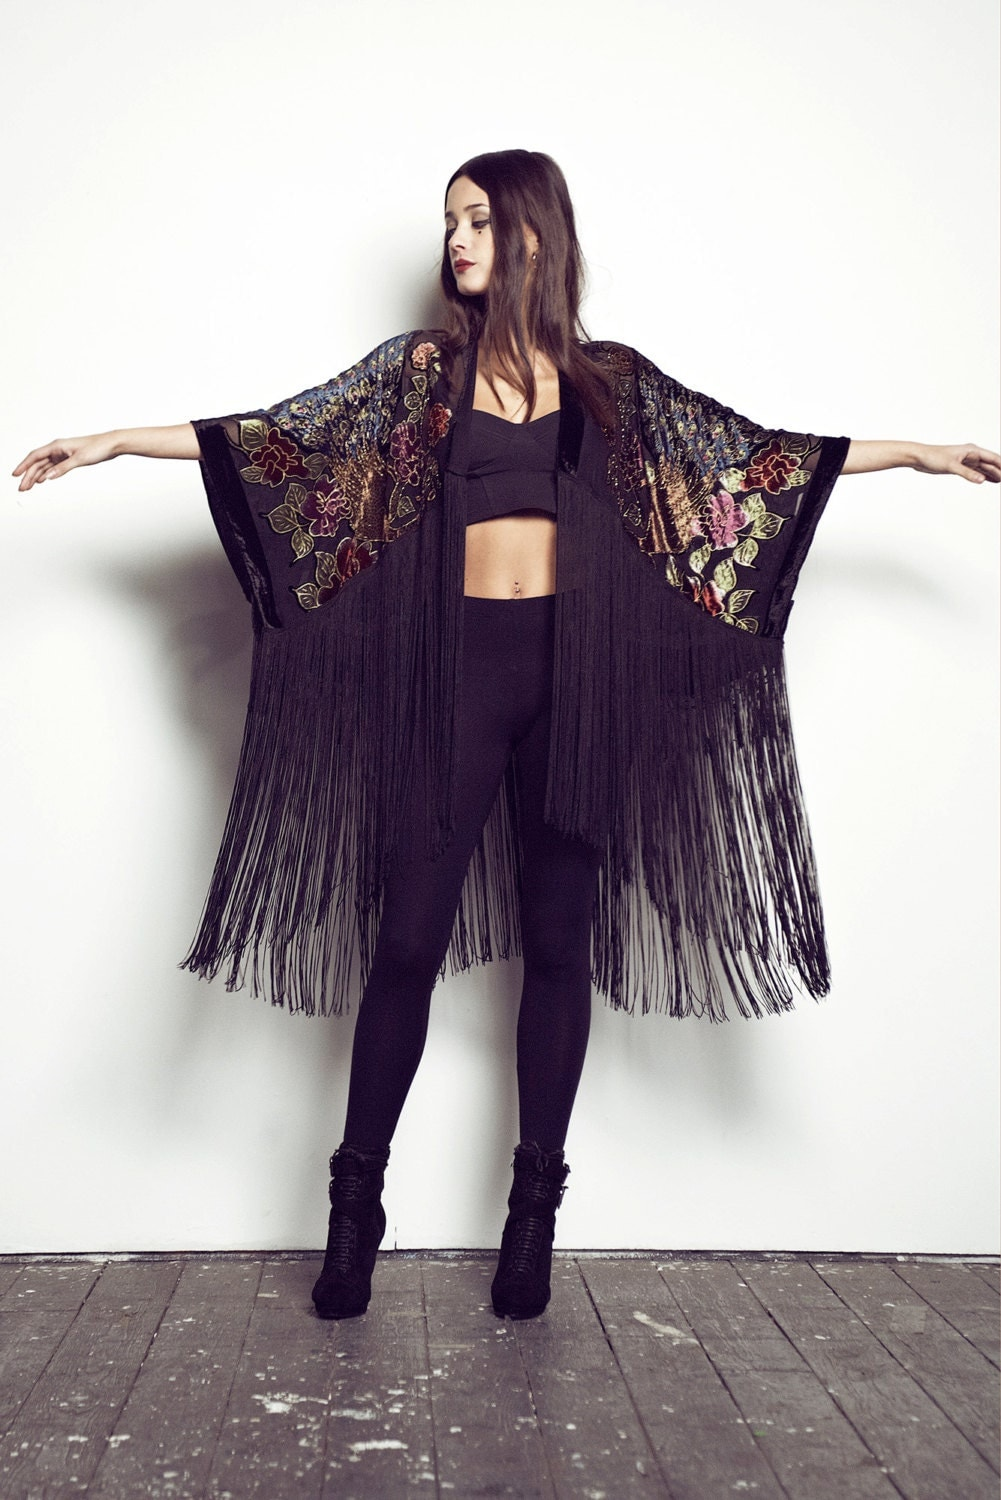 Black hii-low fringe kimono. Pair with denim shorts and a loose tank for a chic boho look!